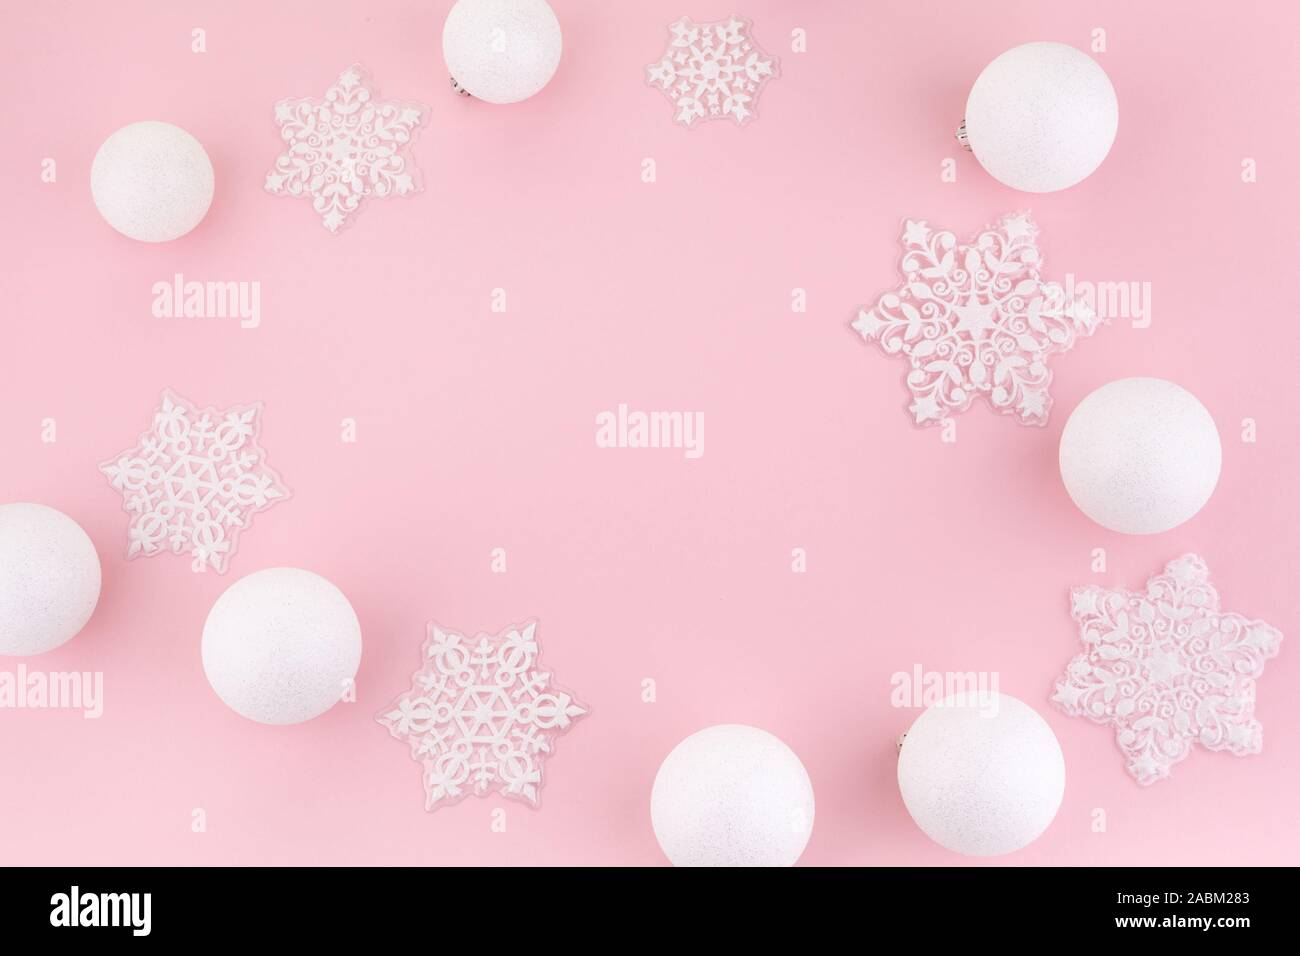 frame made of white christmas decoration with christmas glass balls on pink background christmas wallpaper flat lay 2ABM283